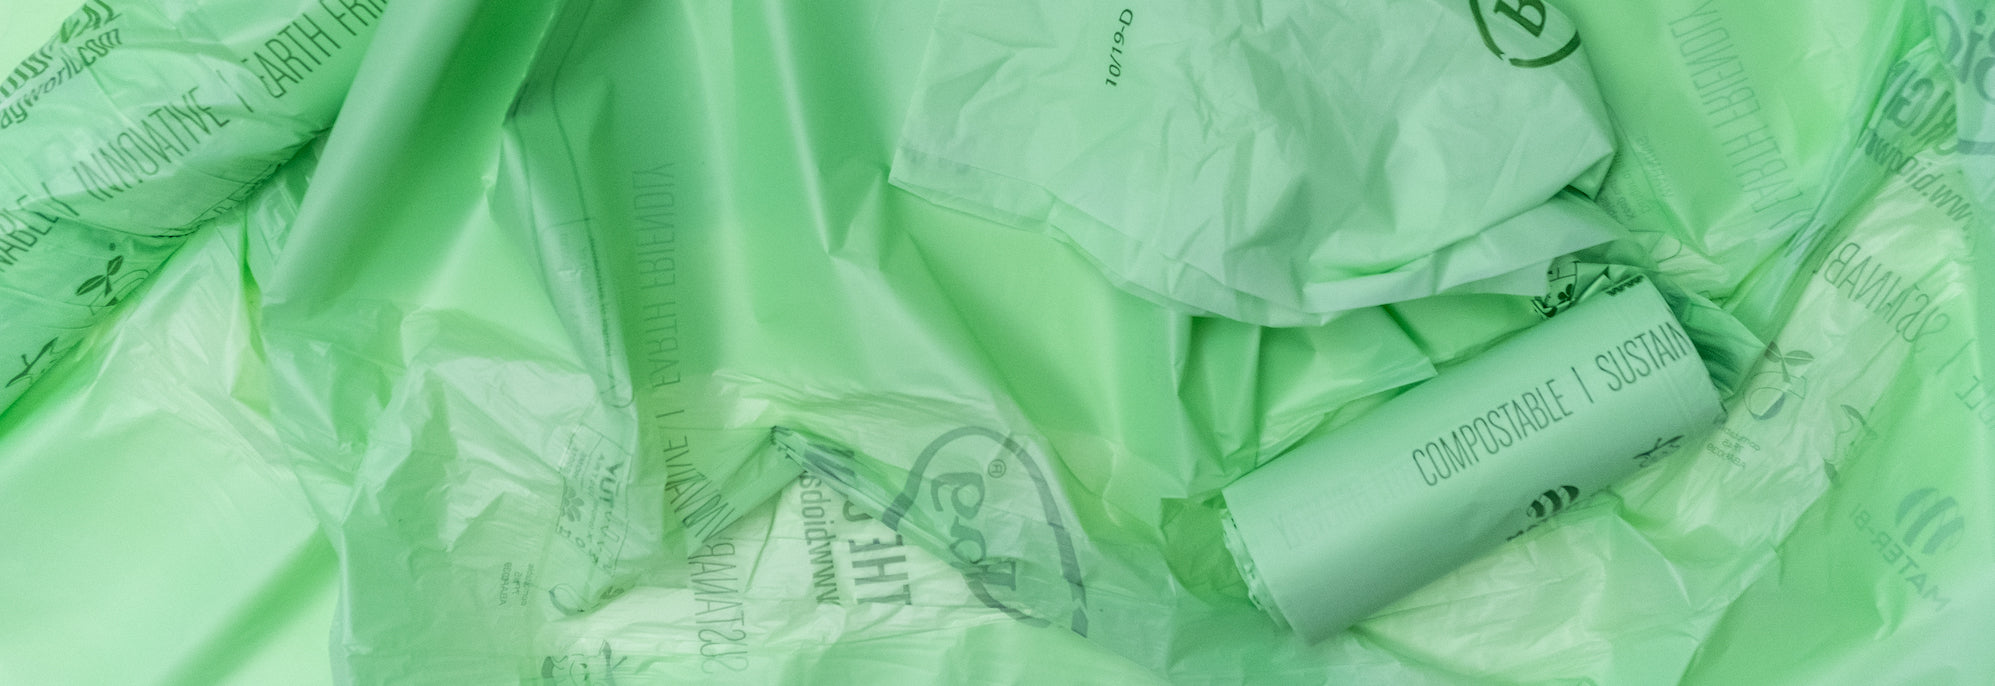 Image of compostable and sustainable bio plastic bags